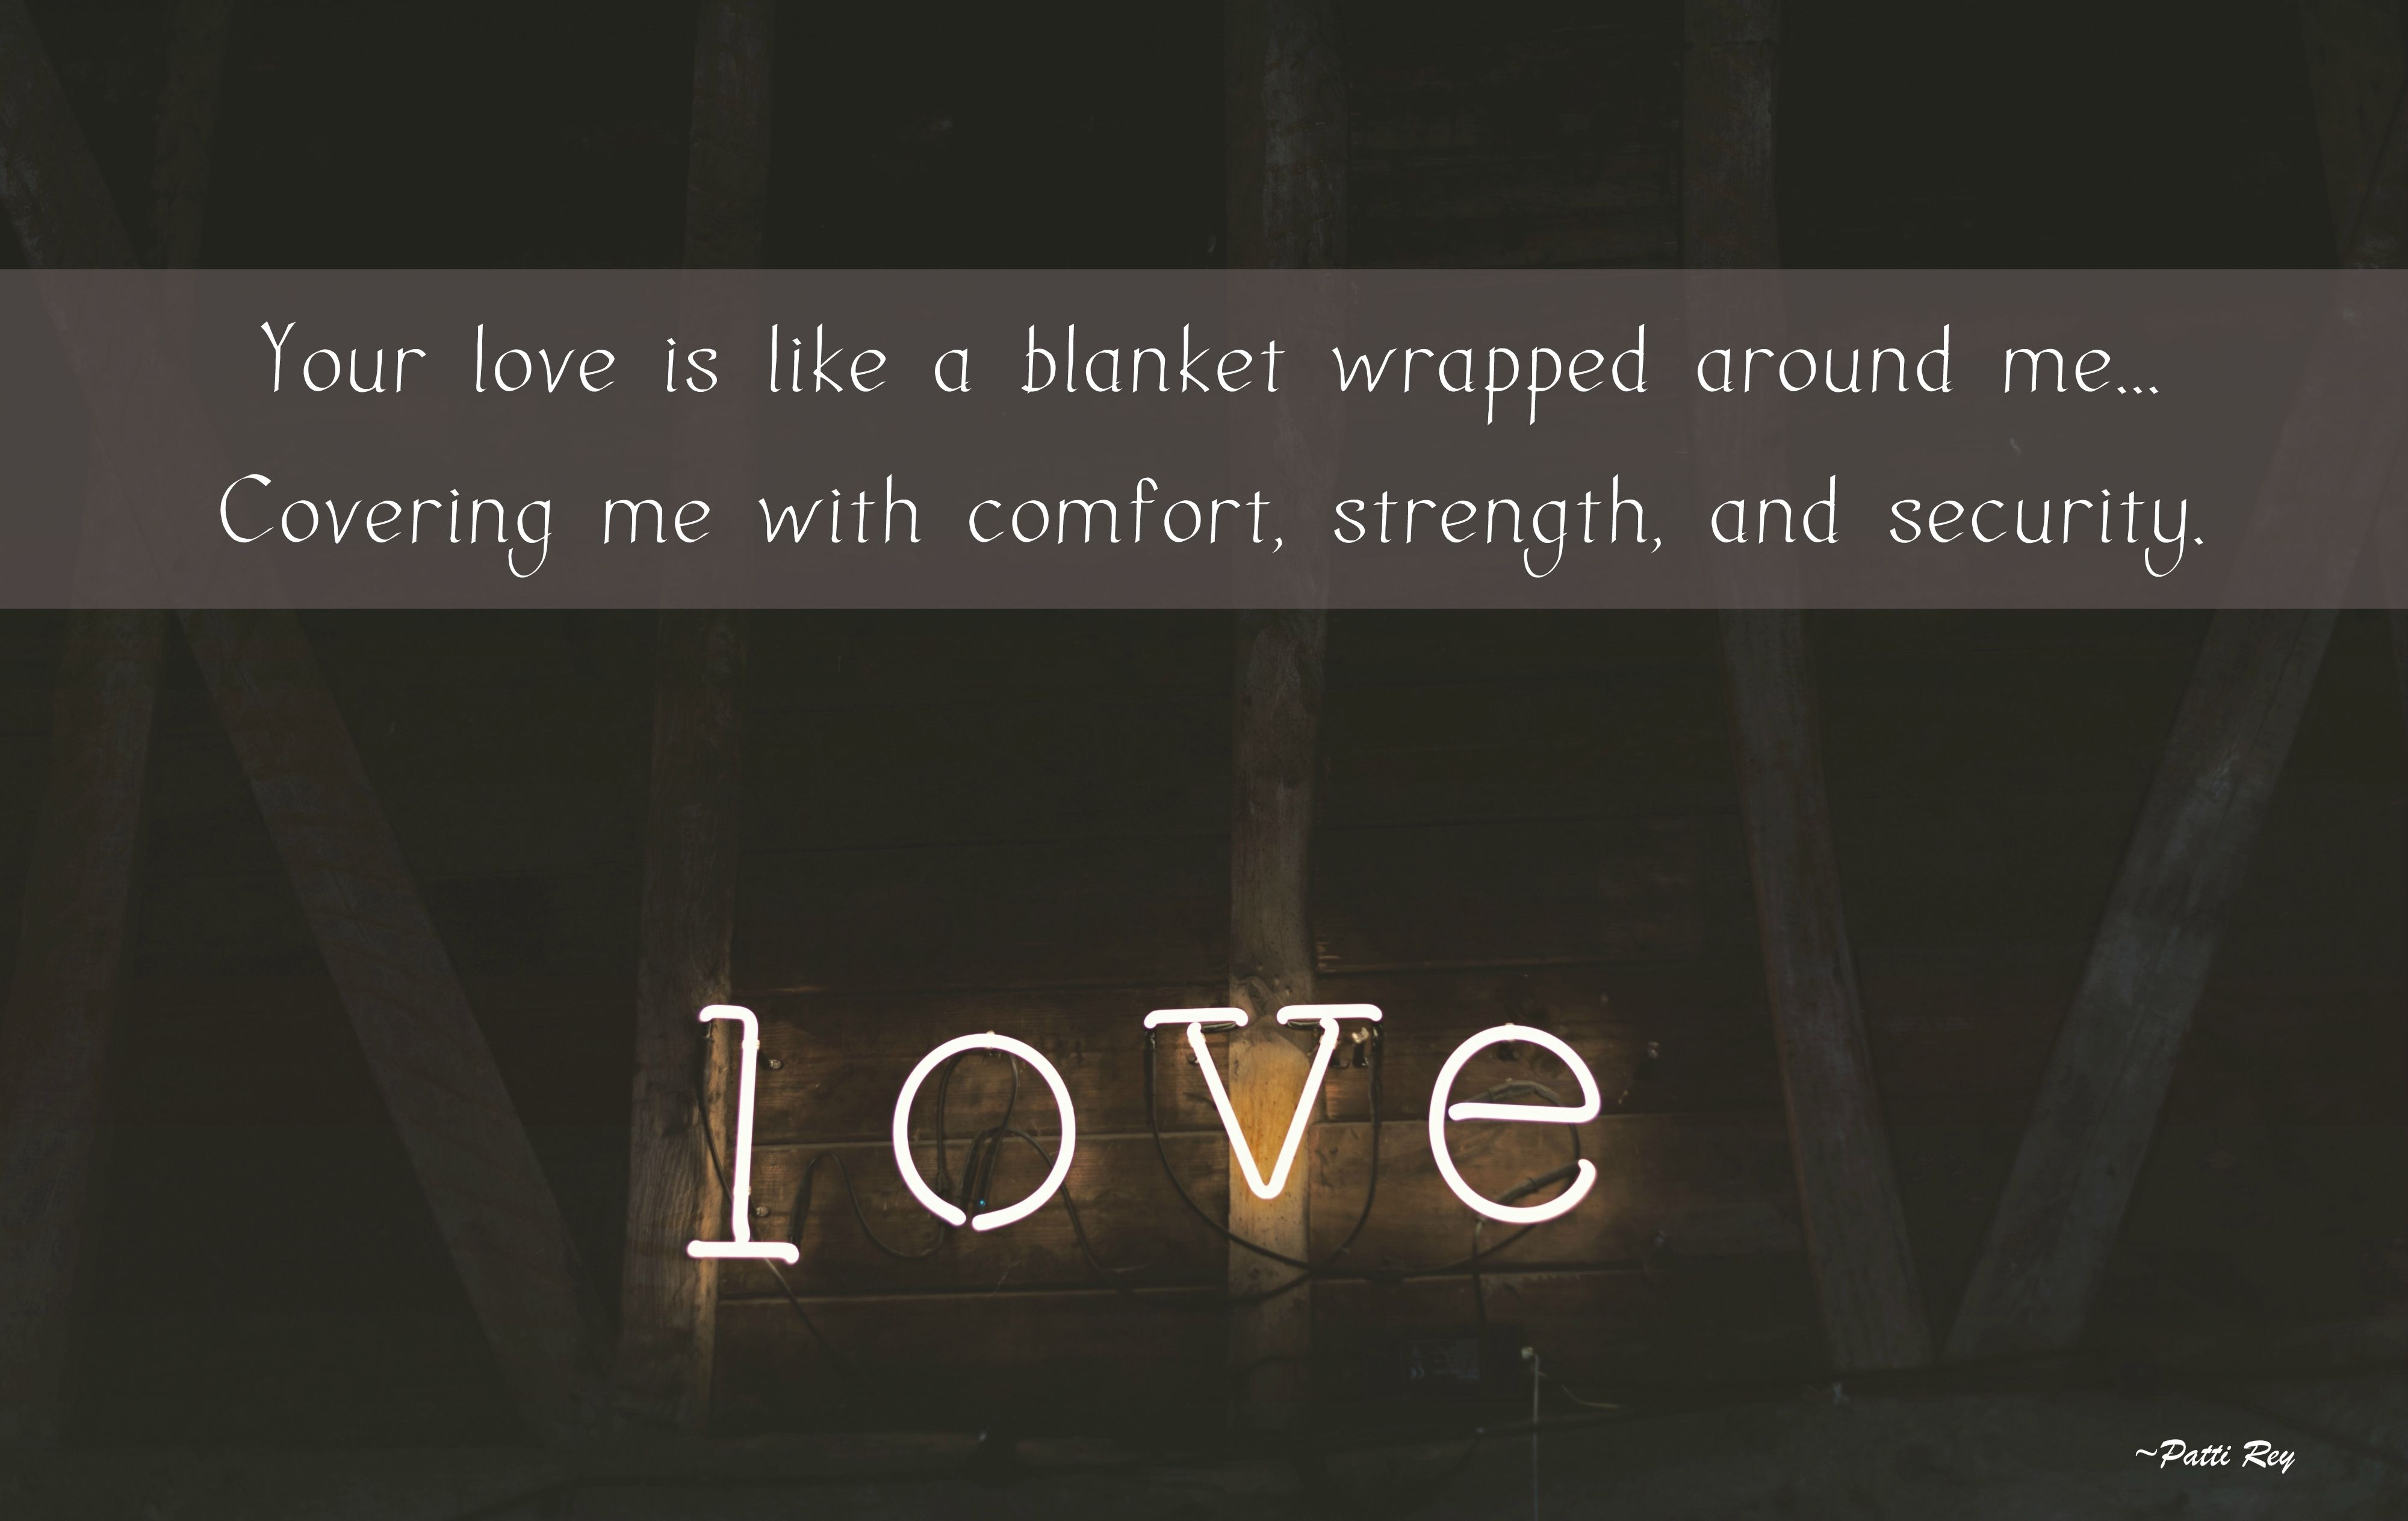 Your love, God, is like a blanket wrapped around me